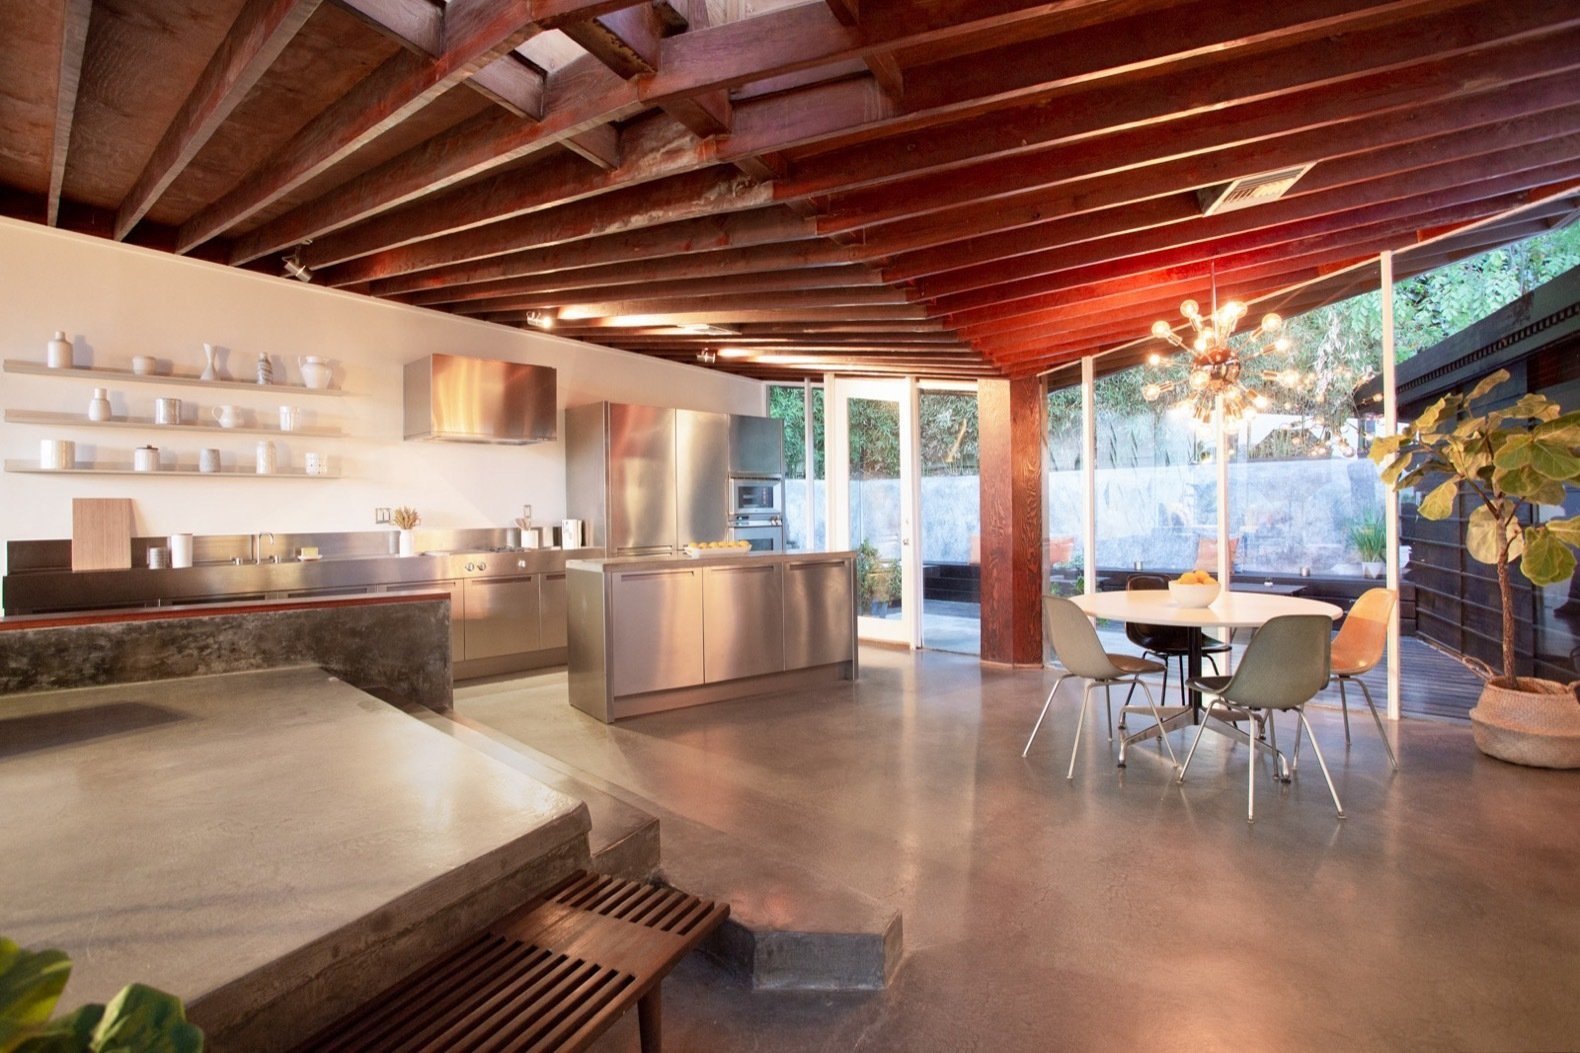 Kitchen, Accent, Wall Oven, Cooktops, Concrete, Refrigerator, Metal, Drop In, Range Hood, Concrete, Ceiling, and Pendant The kitchen features updated appliances, stainless steel countertops and a poured concrete island.   Best Kitchen Cooktops Wall Oven Range Hood Metal Photos from Grab This Sleek L.A. Midcentury by John Lautner For Under $2M